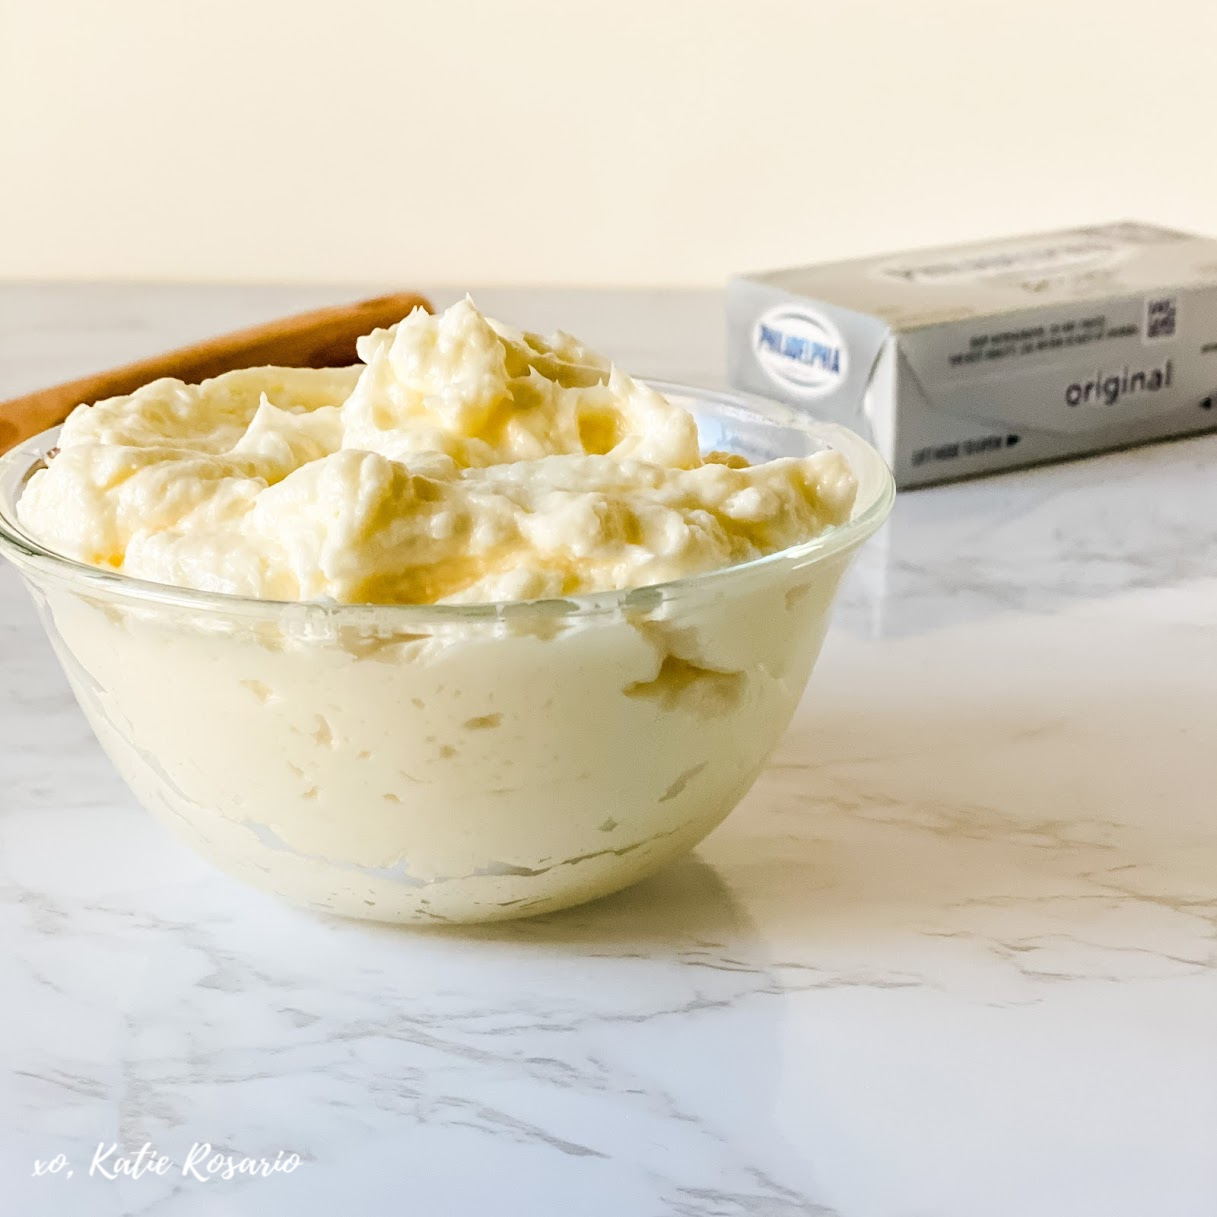 How to make five different flavor variations like chocolate, strawberry, cream cheese, lemon, and Irish cream! Looking for a tried and true frosting recipe that will impress your friends and family? This Swiss Meringue Buttercream is a light and fluffy frosting that is beyond creamy and always a crowd-pleaser. #xokatierosario #swissmeringuebuttercream #easyfrostingrecipe #swissmeringue #cakedecoratingtips